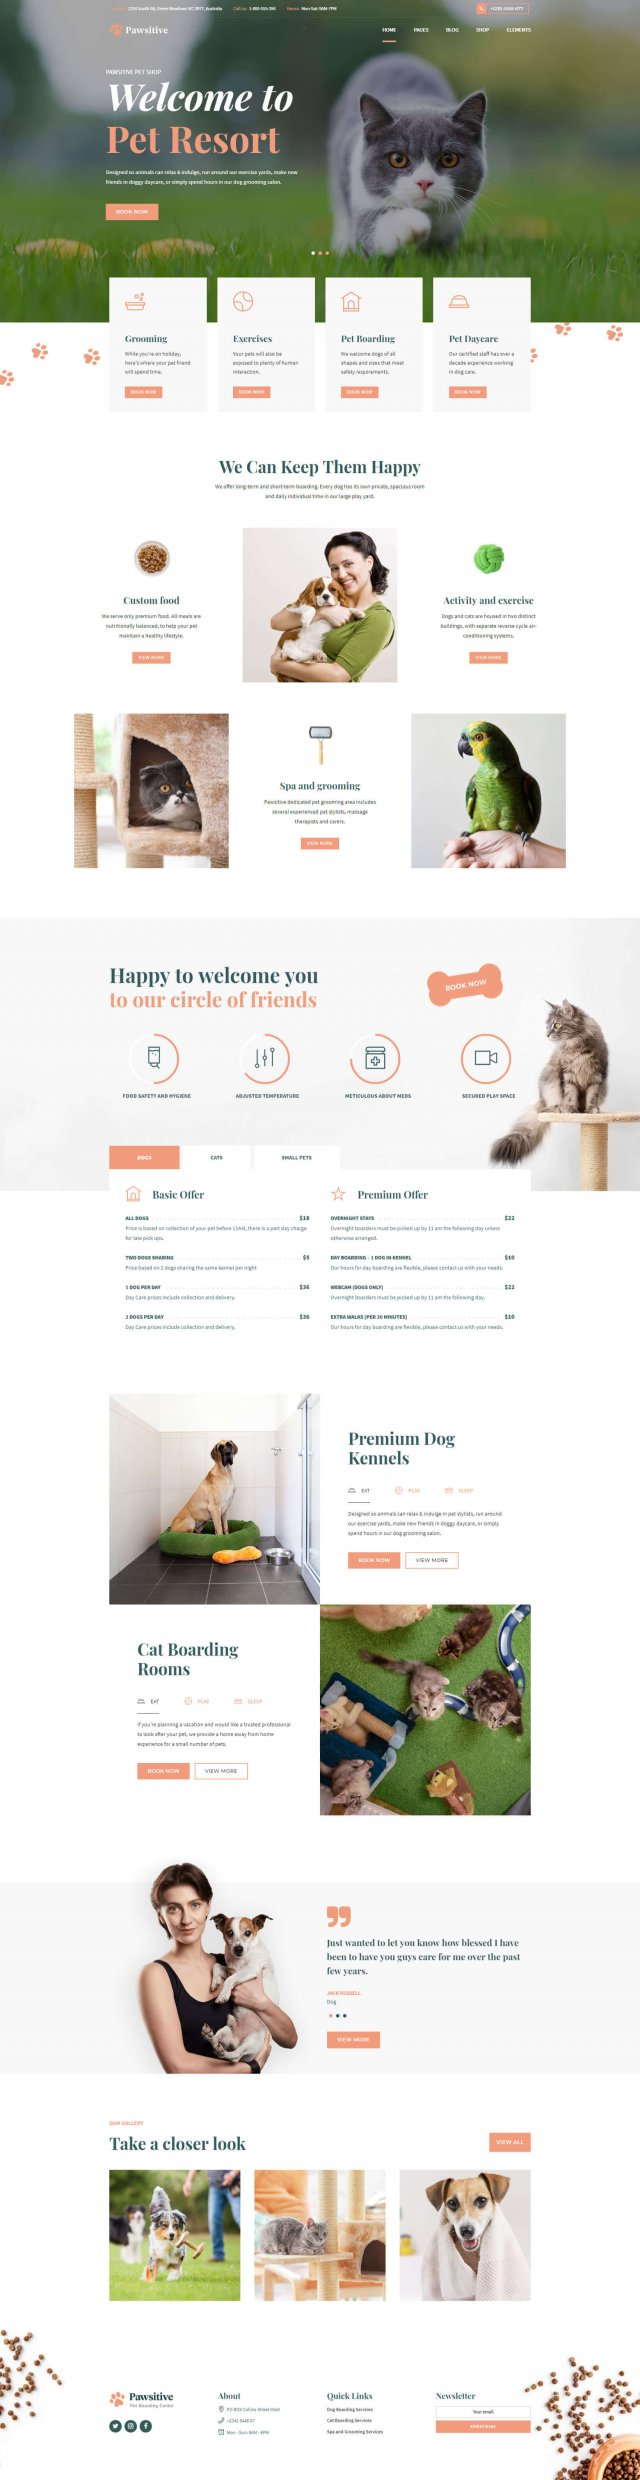 http://pawsitive.bold-themes.com/wp-content/uploads/2019/09/Bella-Home-02-640x2480.jpg